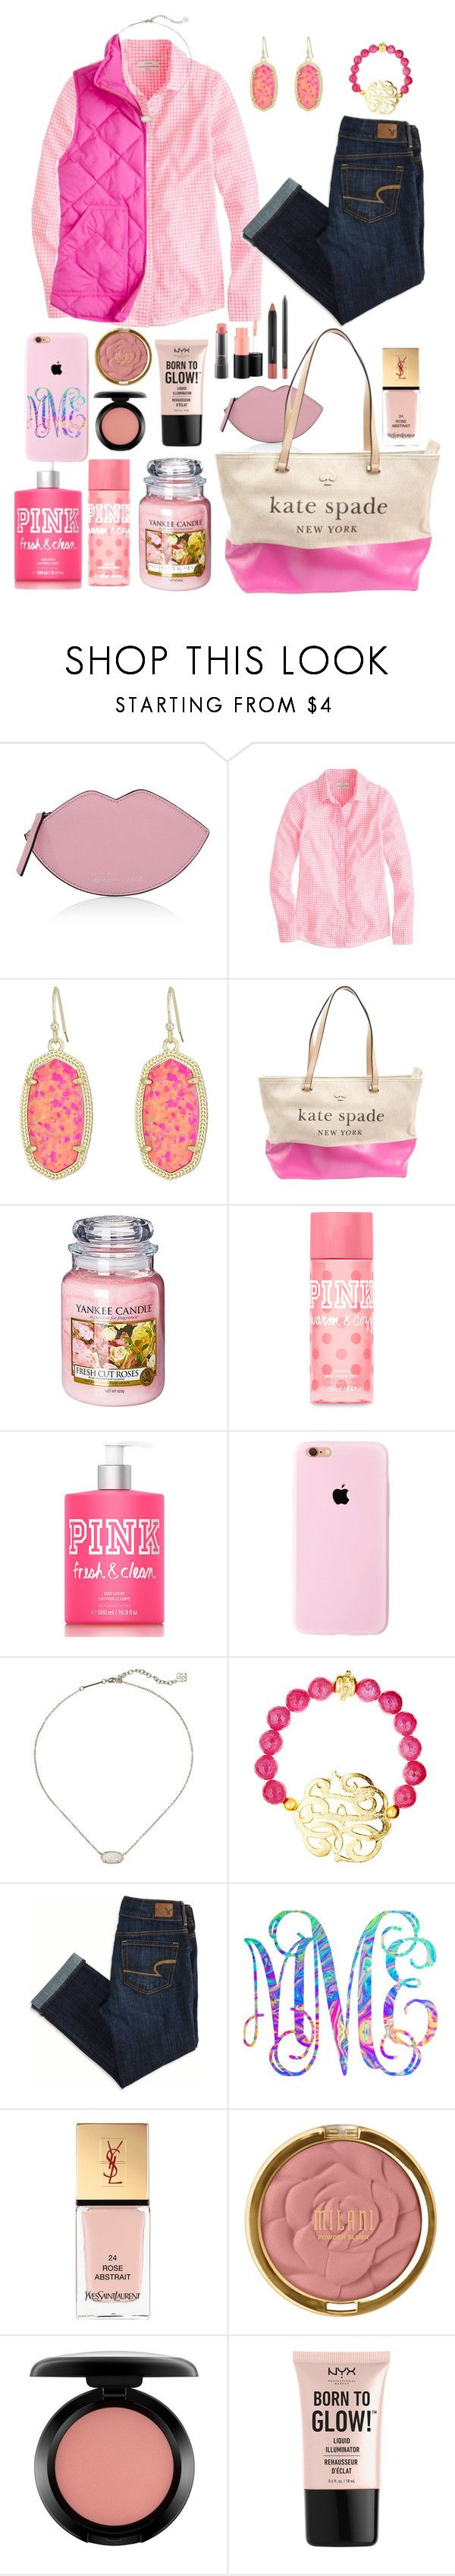 """Wednesday outfit"" by kat-prepster ❤ liked on Polyvore featuring Kendall + Kylie, J.Crew, Kendra Scott, Kate Spade, Yankee Candle, Victoria's Secret PINK, Susan Shaw, American Eagle Outfitters, Lilly Pulitzer and Yves Saint Laurent"